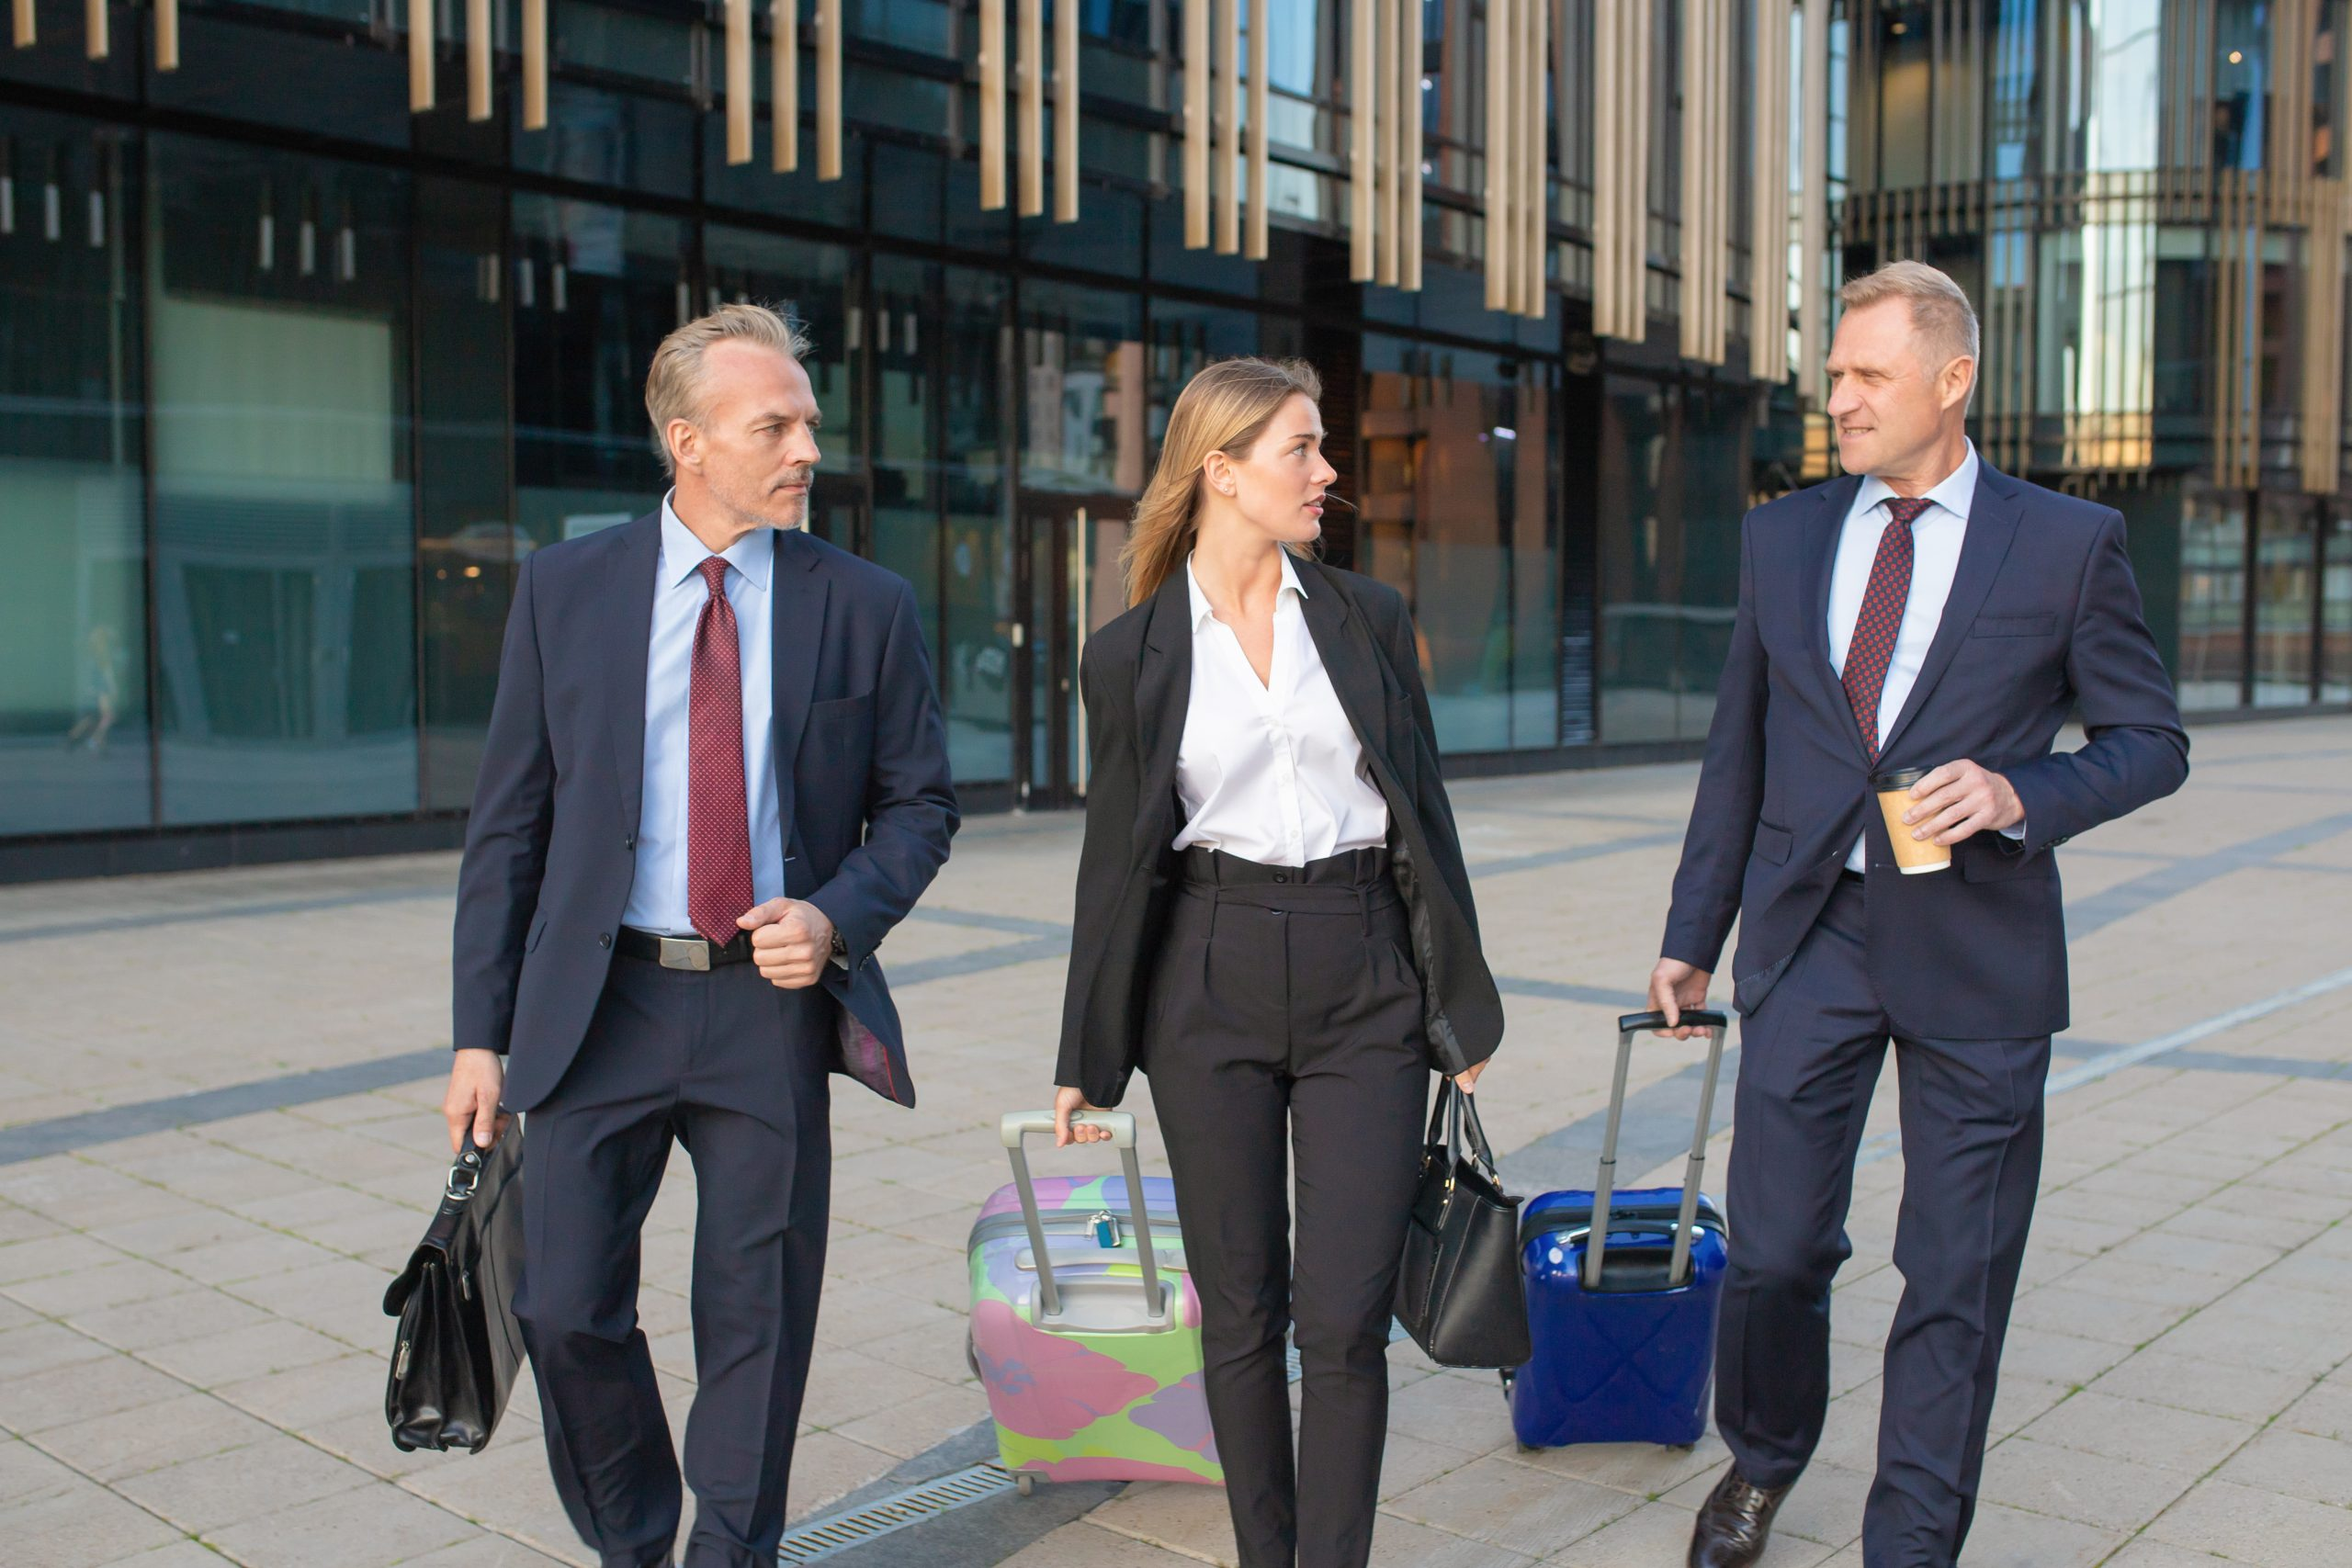 Confident businesspeople travelling with luggage, walking to hotel, wheeling suitcases, talking. Front view. Business trip or corporate communication concept